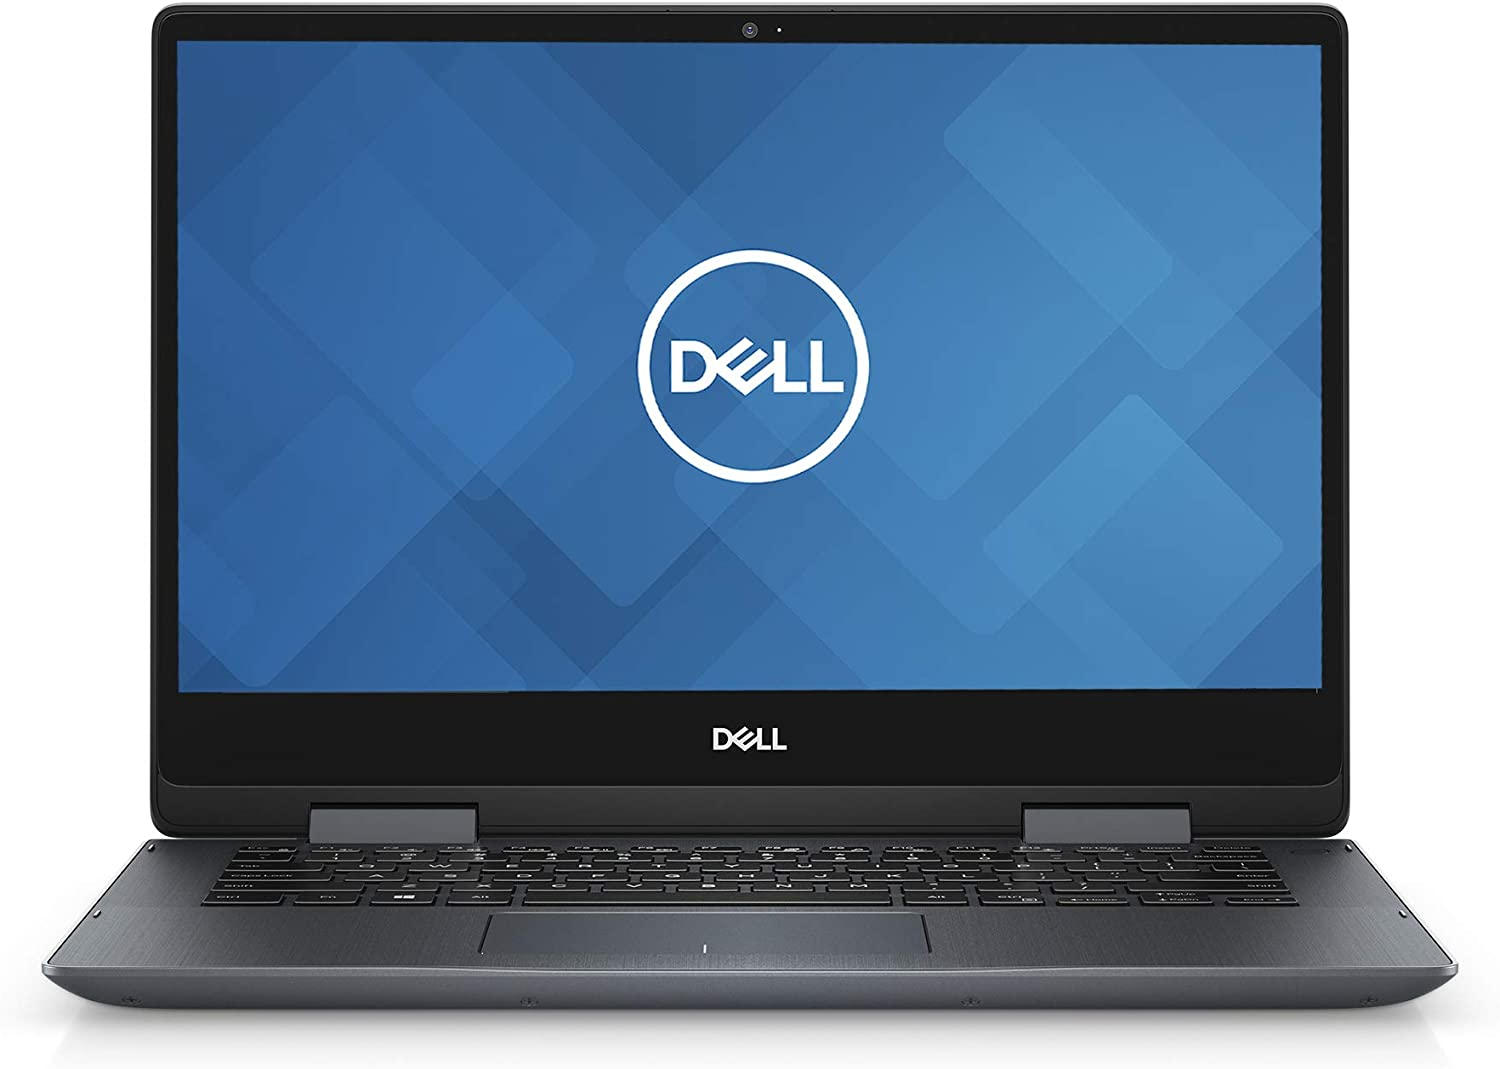 Dell Inspiron 14 5482 (2In1)|14.0-Inch FHD (1920 X 1080) IPS Touchscreen | Intel Core i5 Processor | 8GB Mem| 256SSD, 14-14.99""